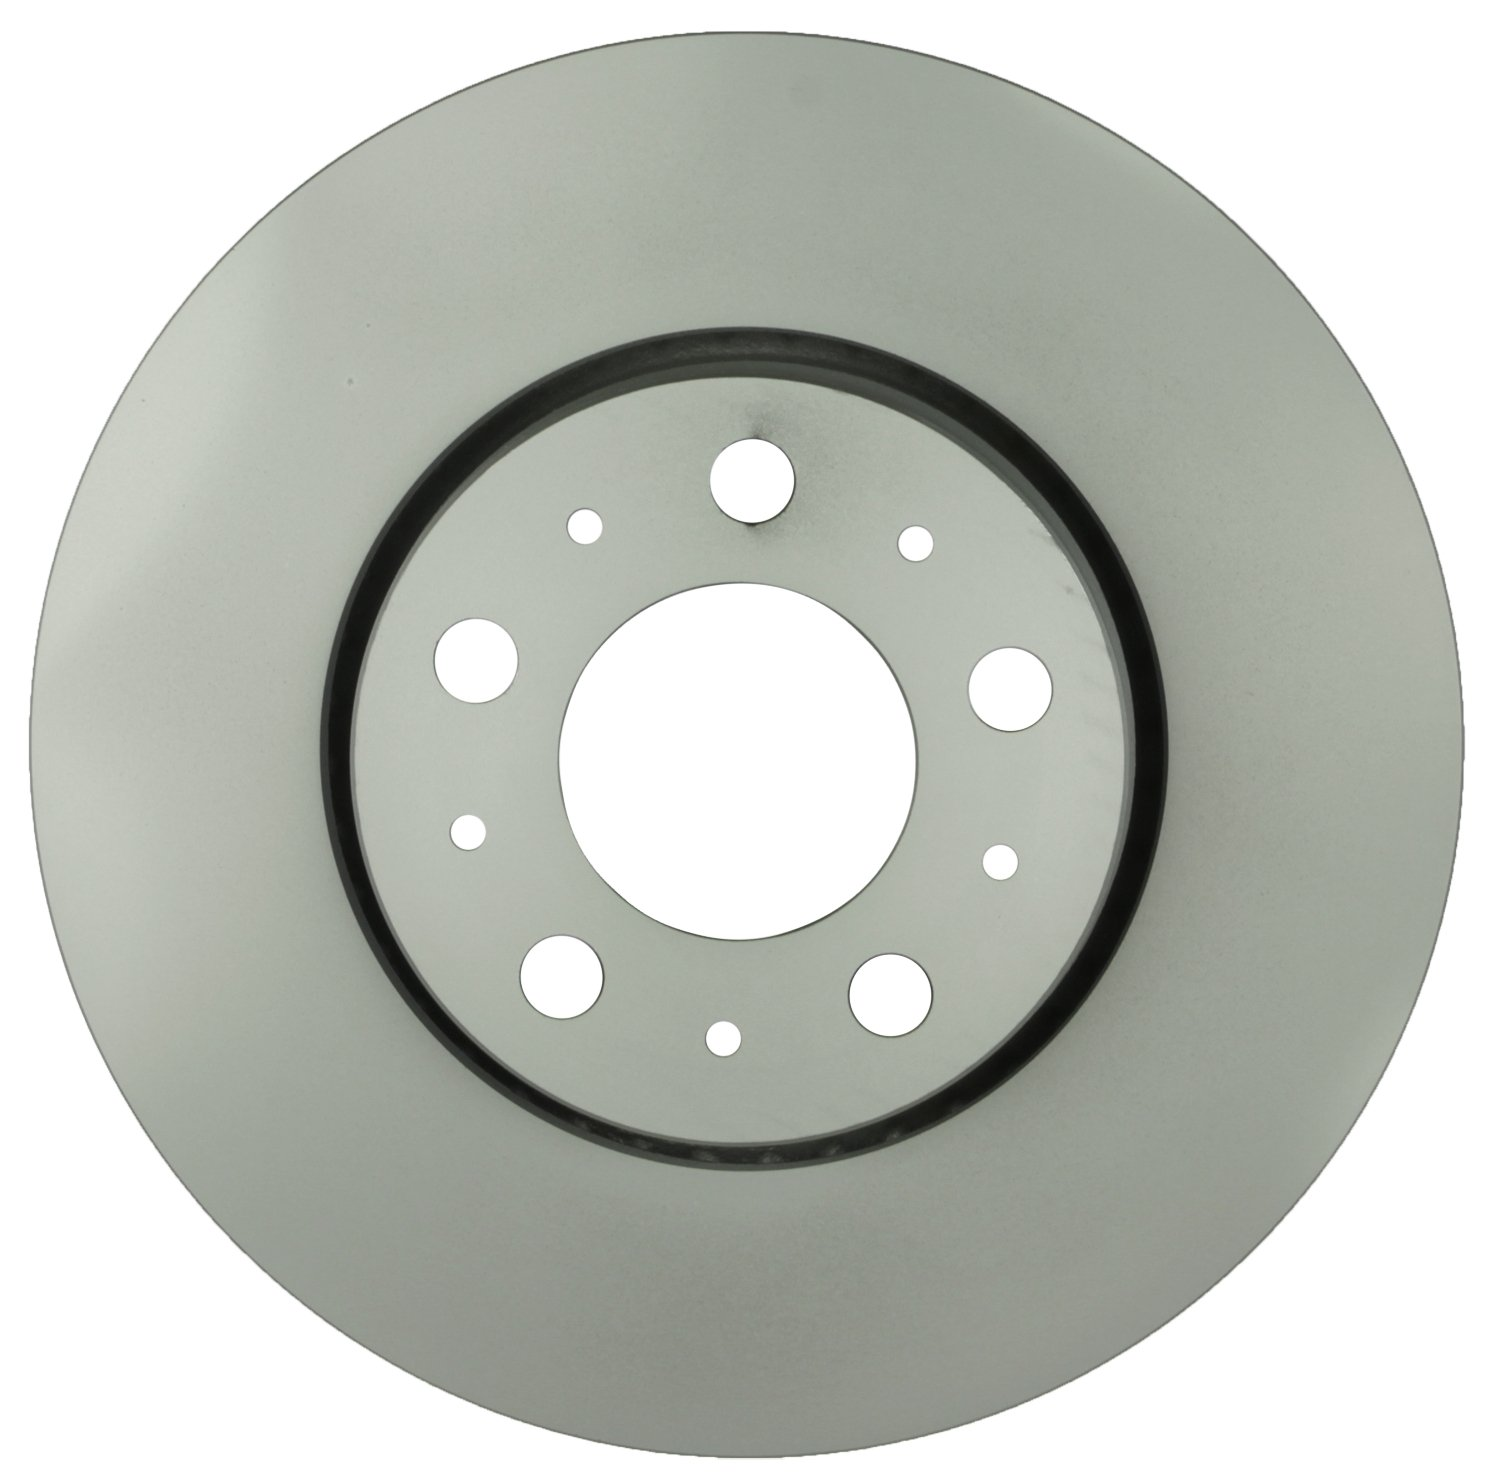 Bosch 52011348 Quietcast Premium Disc Brake Rotor Front Pads Squeaking Noise When Brakes Applied Car Judders Automotive